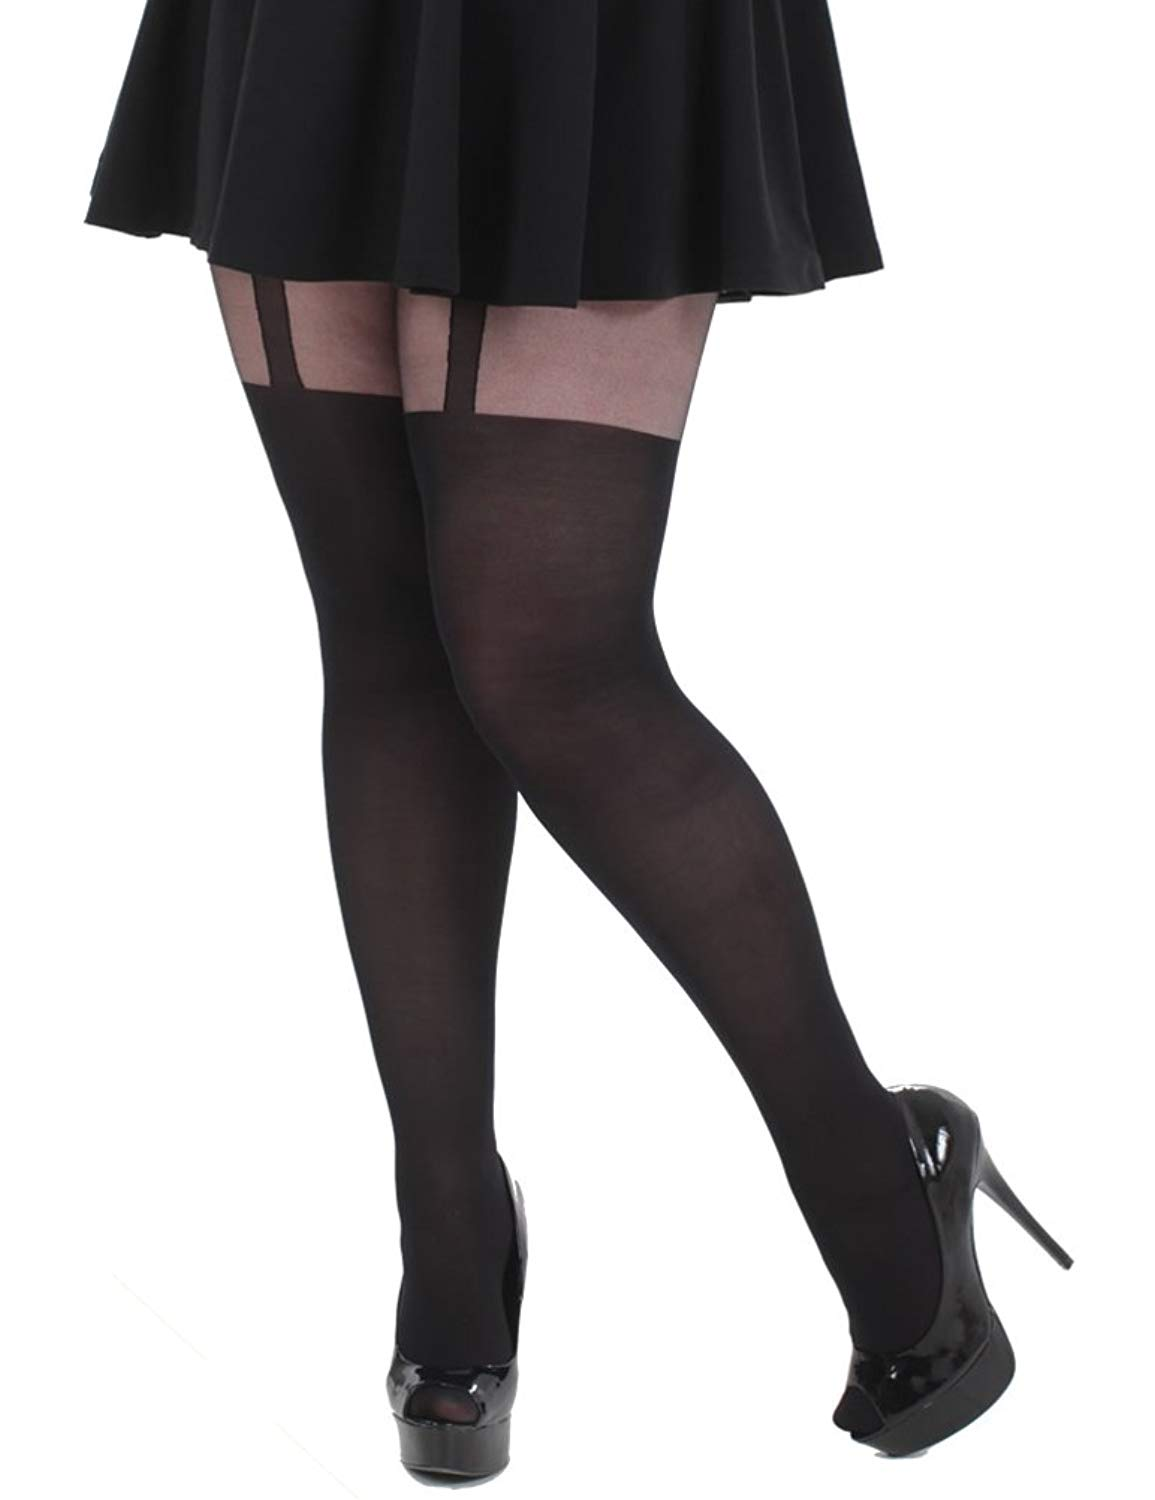 634cedf9d25 Get Quotations · Plus Size Mock Suspender Tights XL to 3x